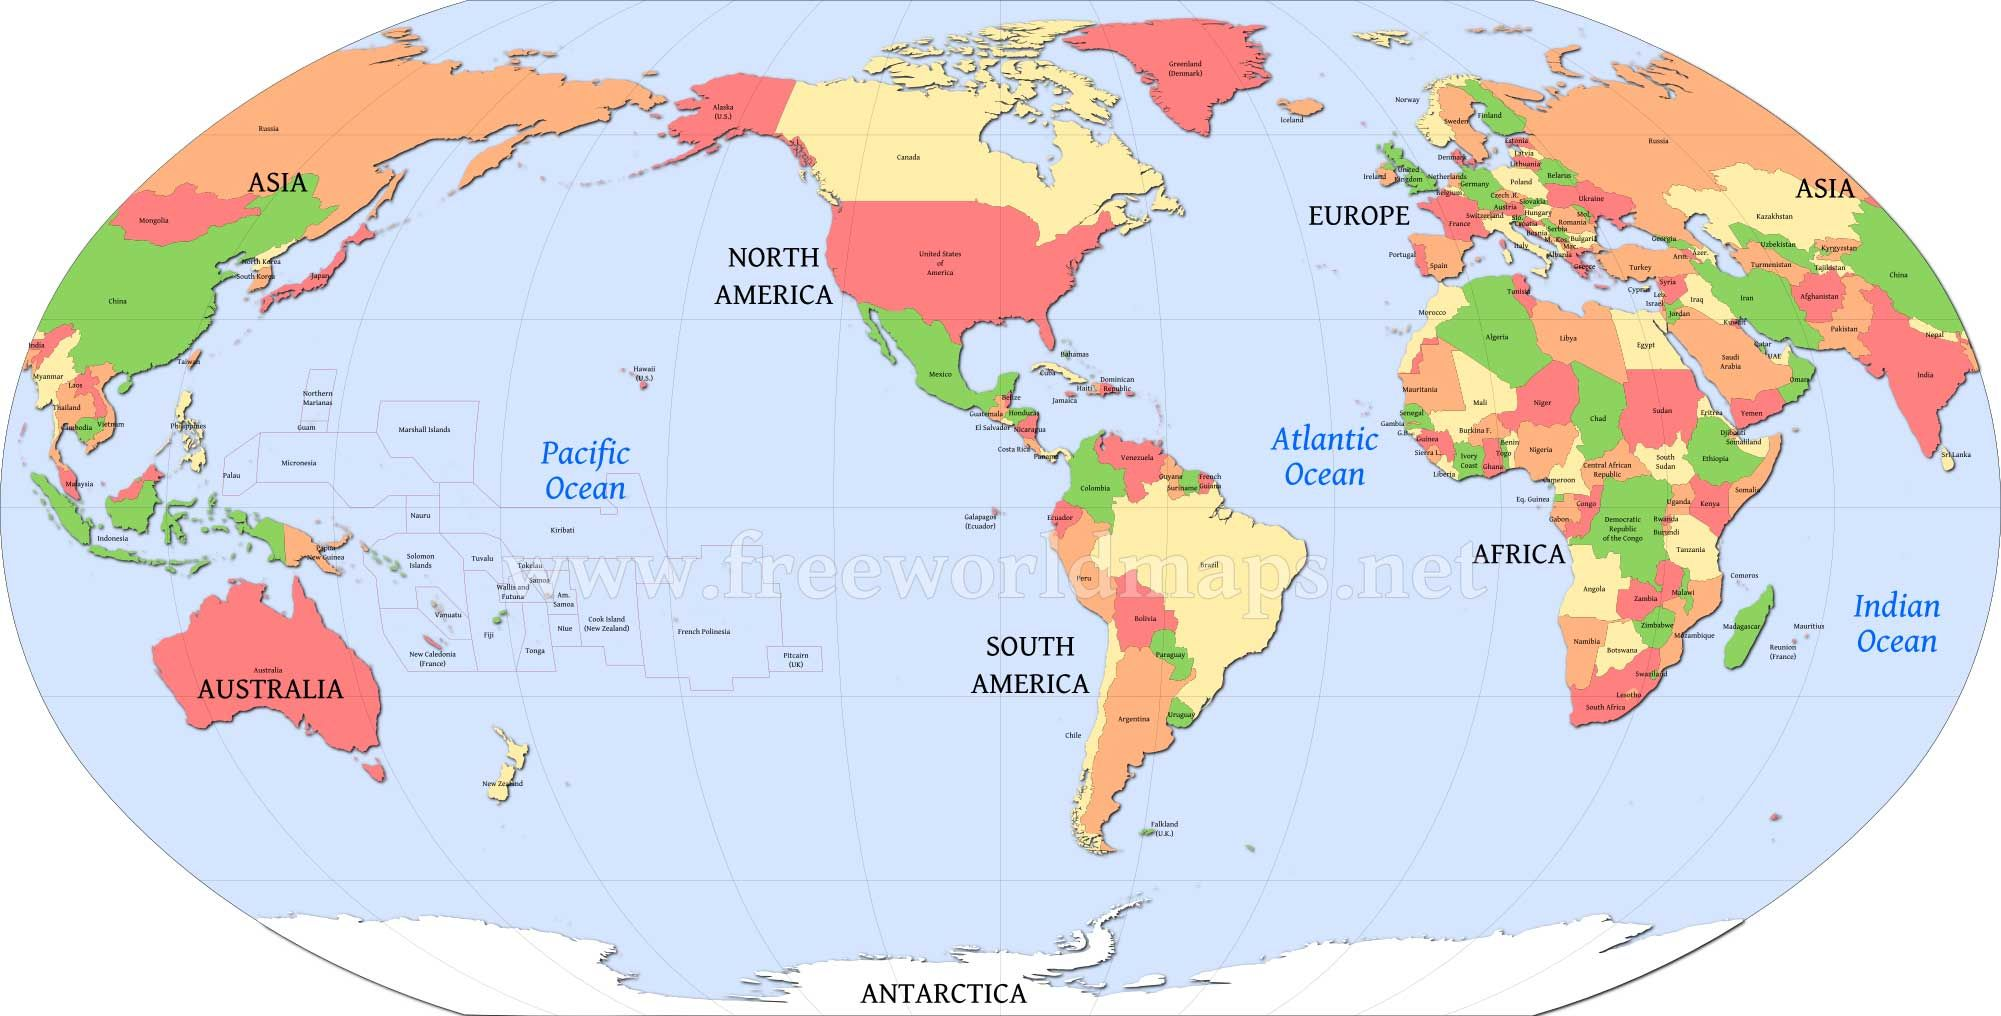 Us Centric World Map America Centric World map | Blank world map, World map picture